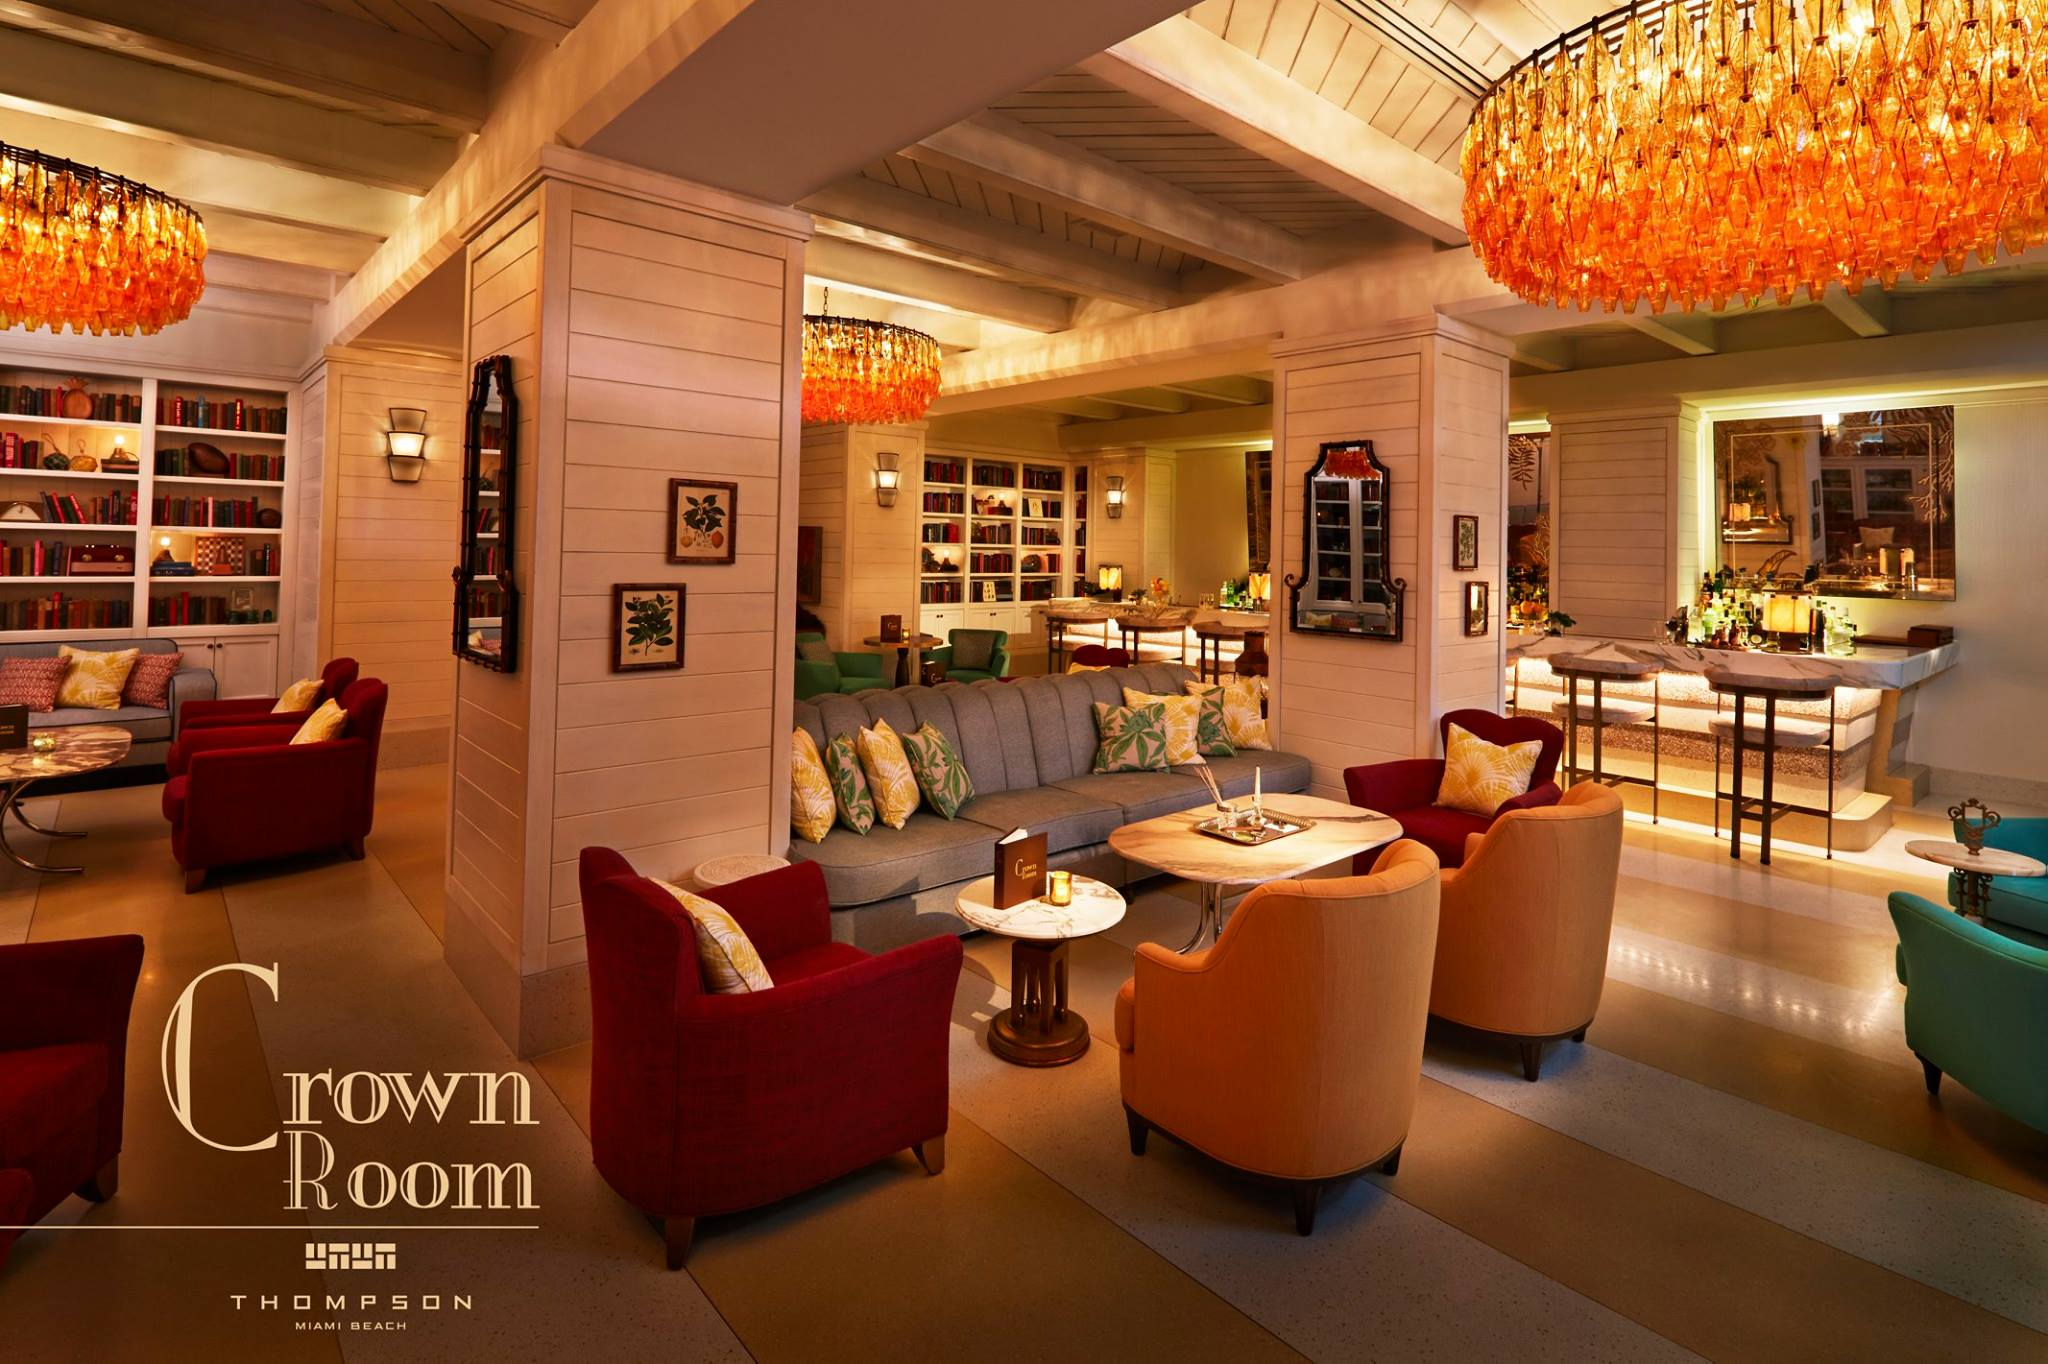 Crown Room Miami Beach